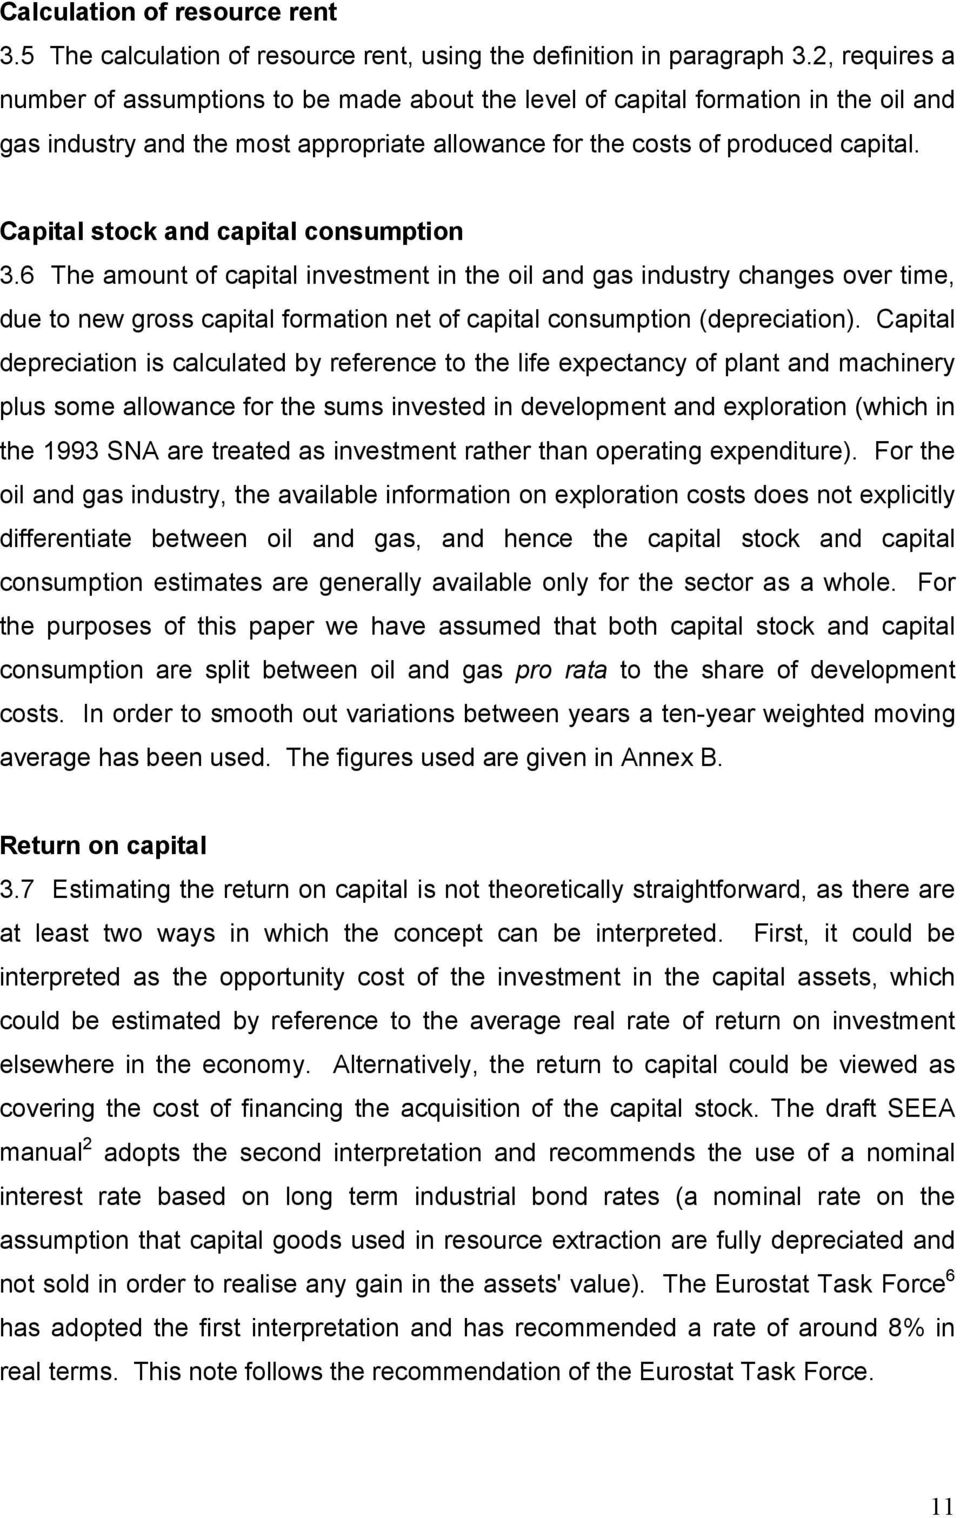 Capital stock and capital consumption 3.6 The amount of capital investment in the oil and gas industry changes over time, due to new gross capital formation net of capital consumption (depreciation).